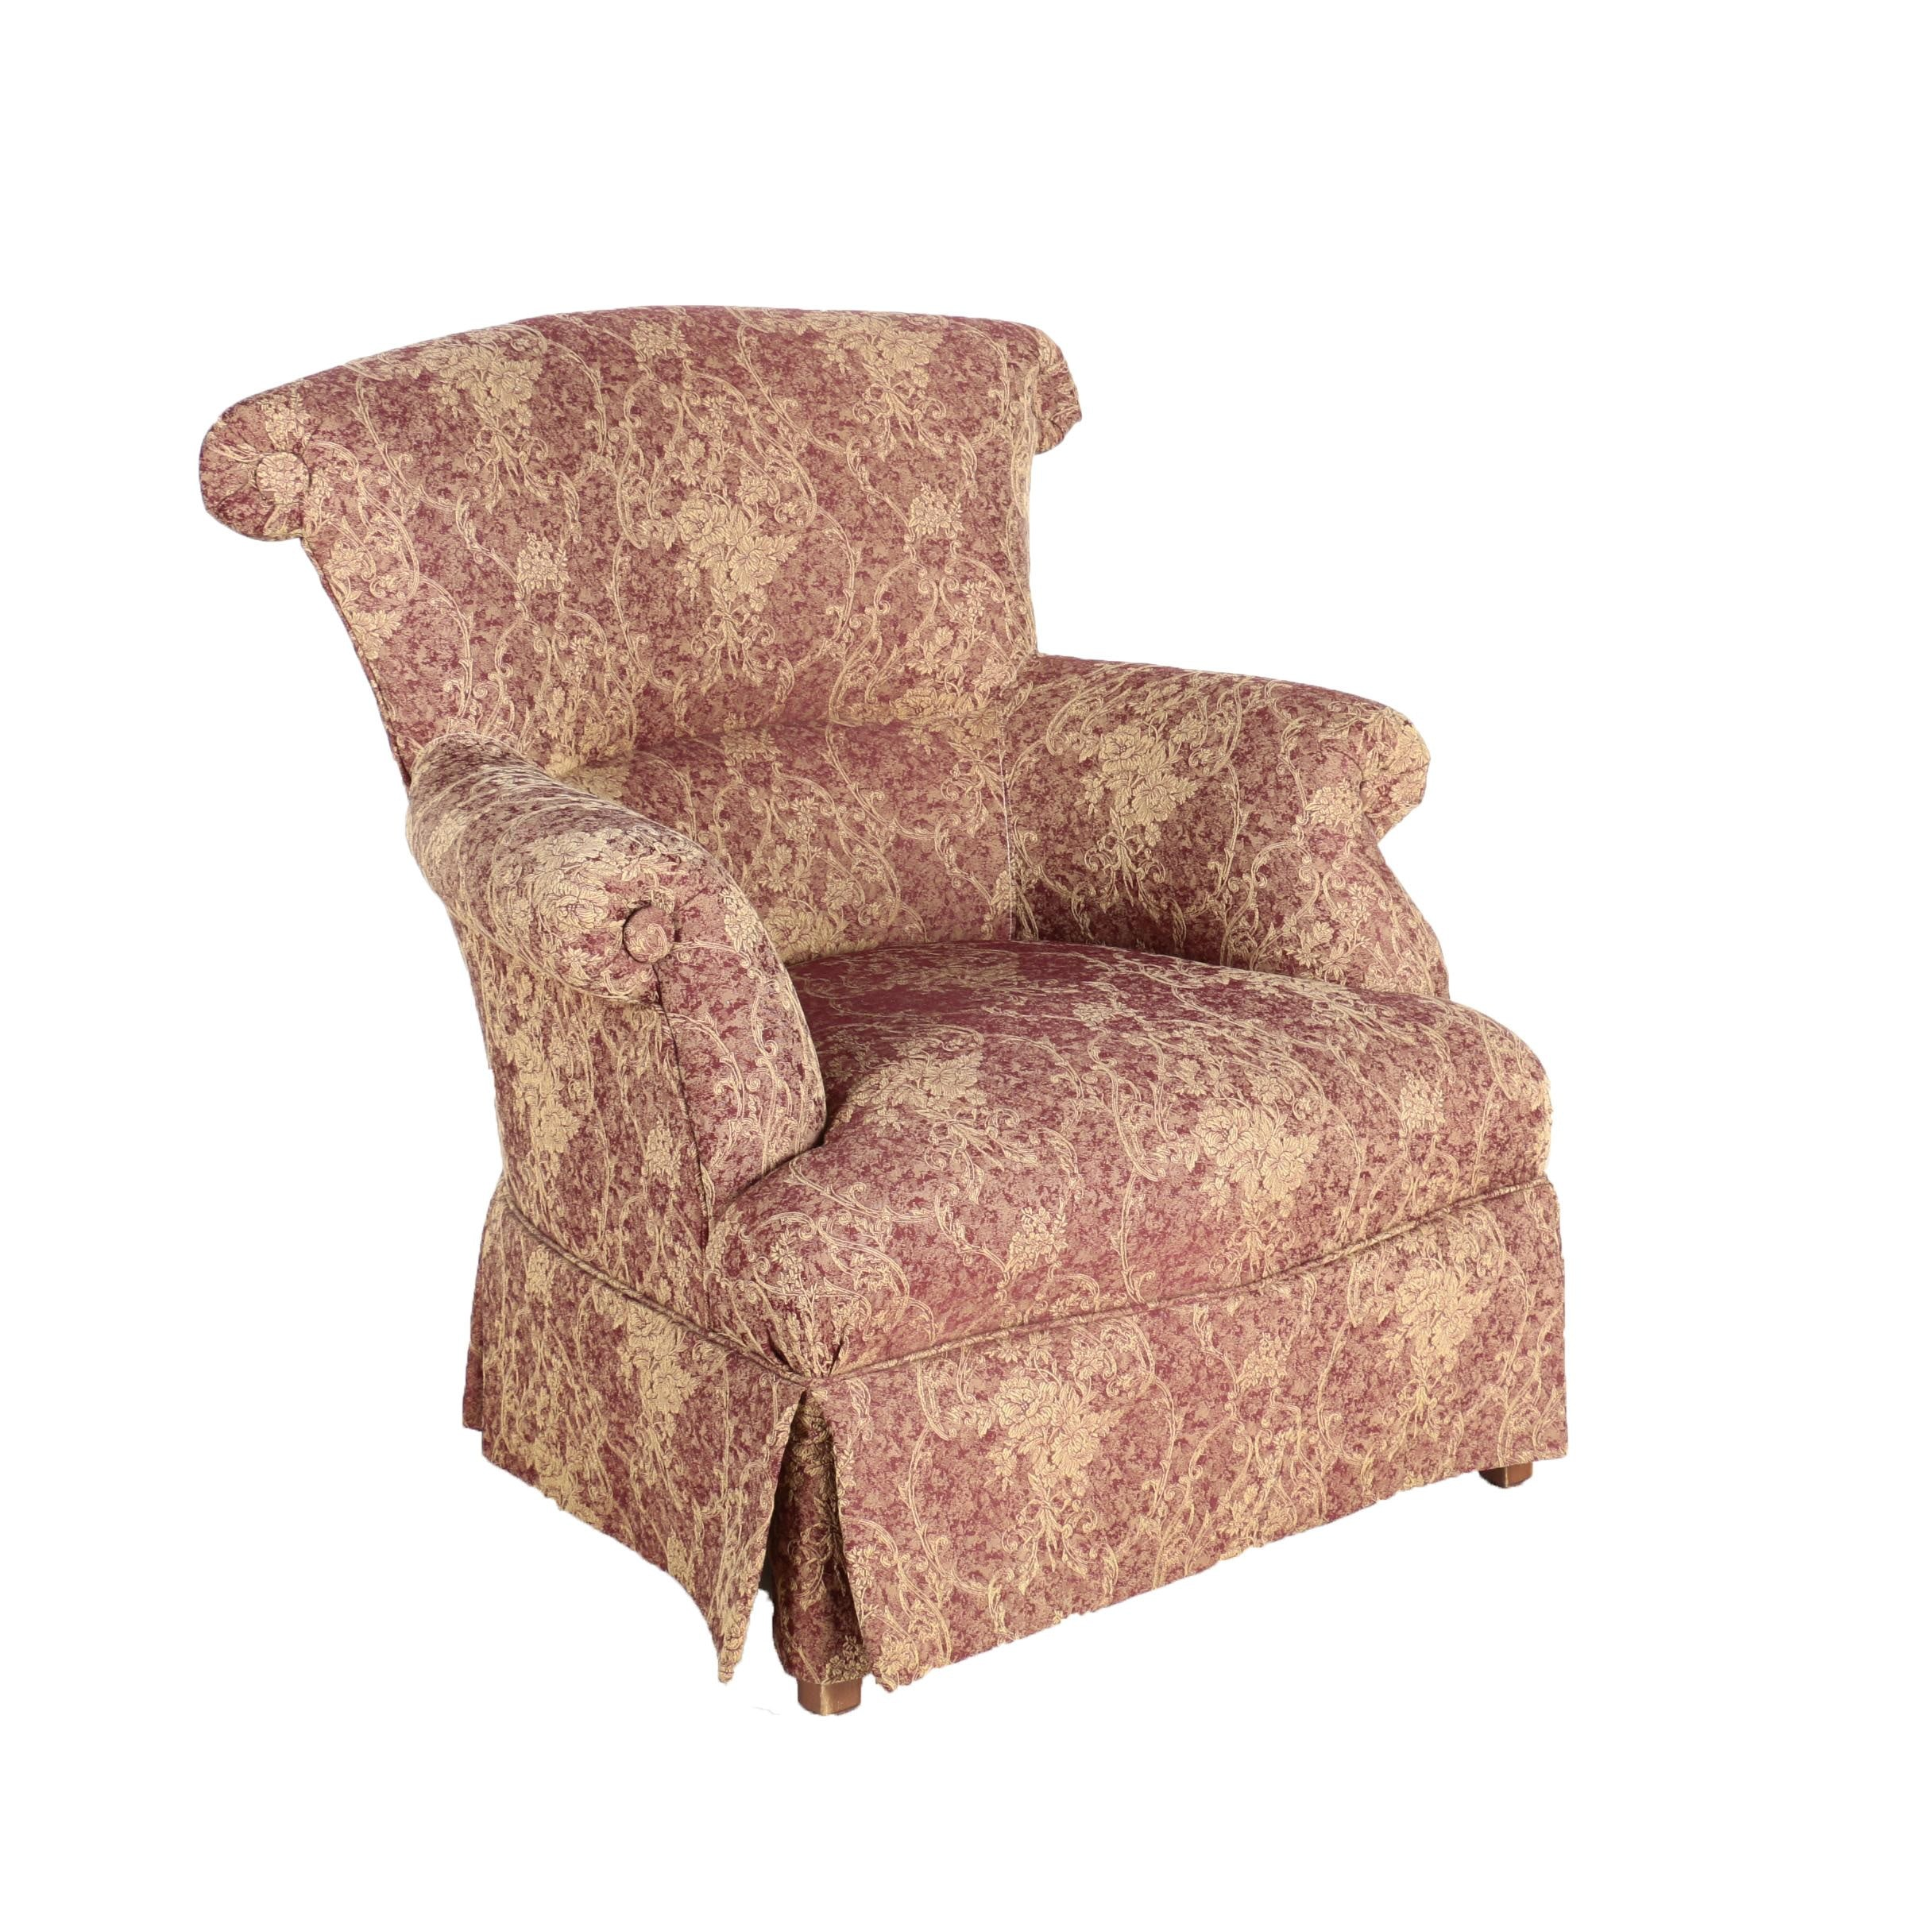 Contemporary Jacquard Upholstered Armchair by Ethan Allen